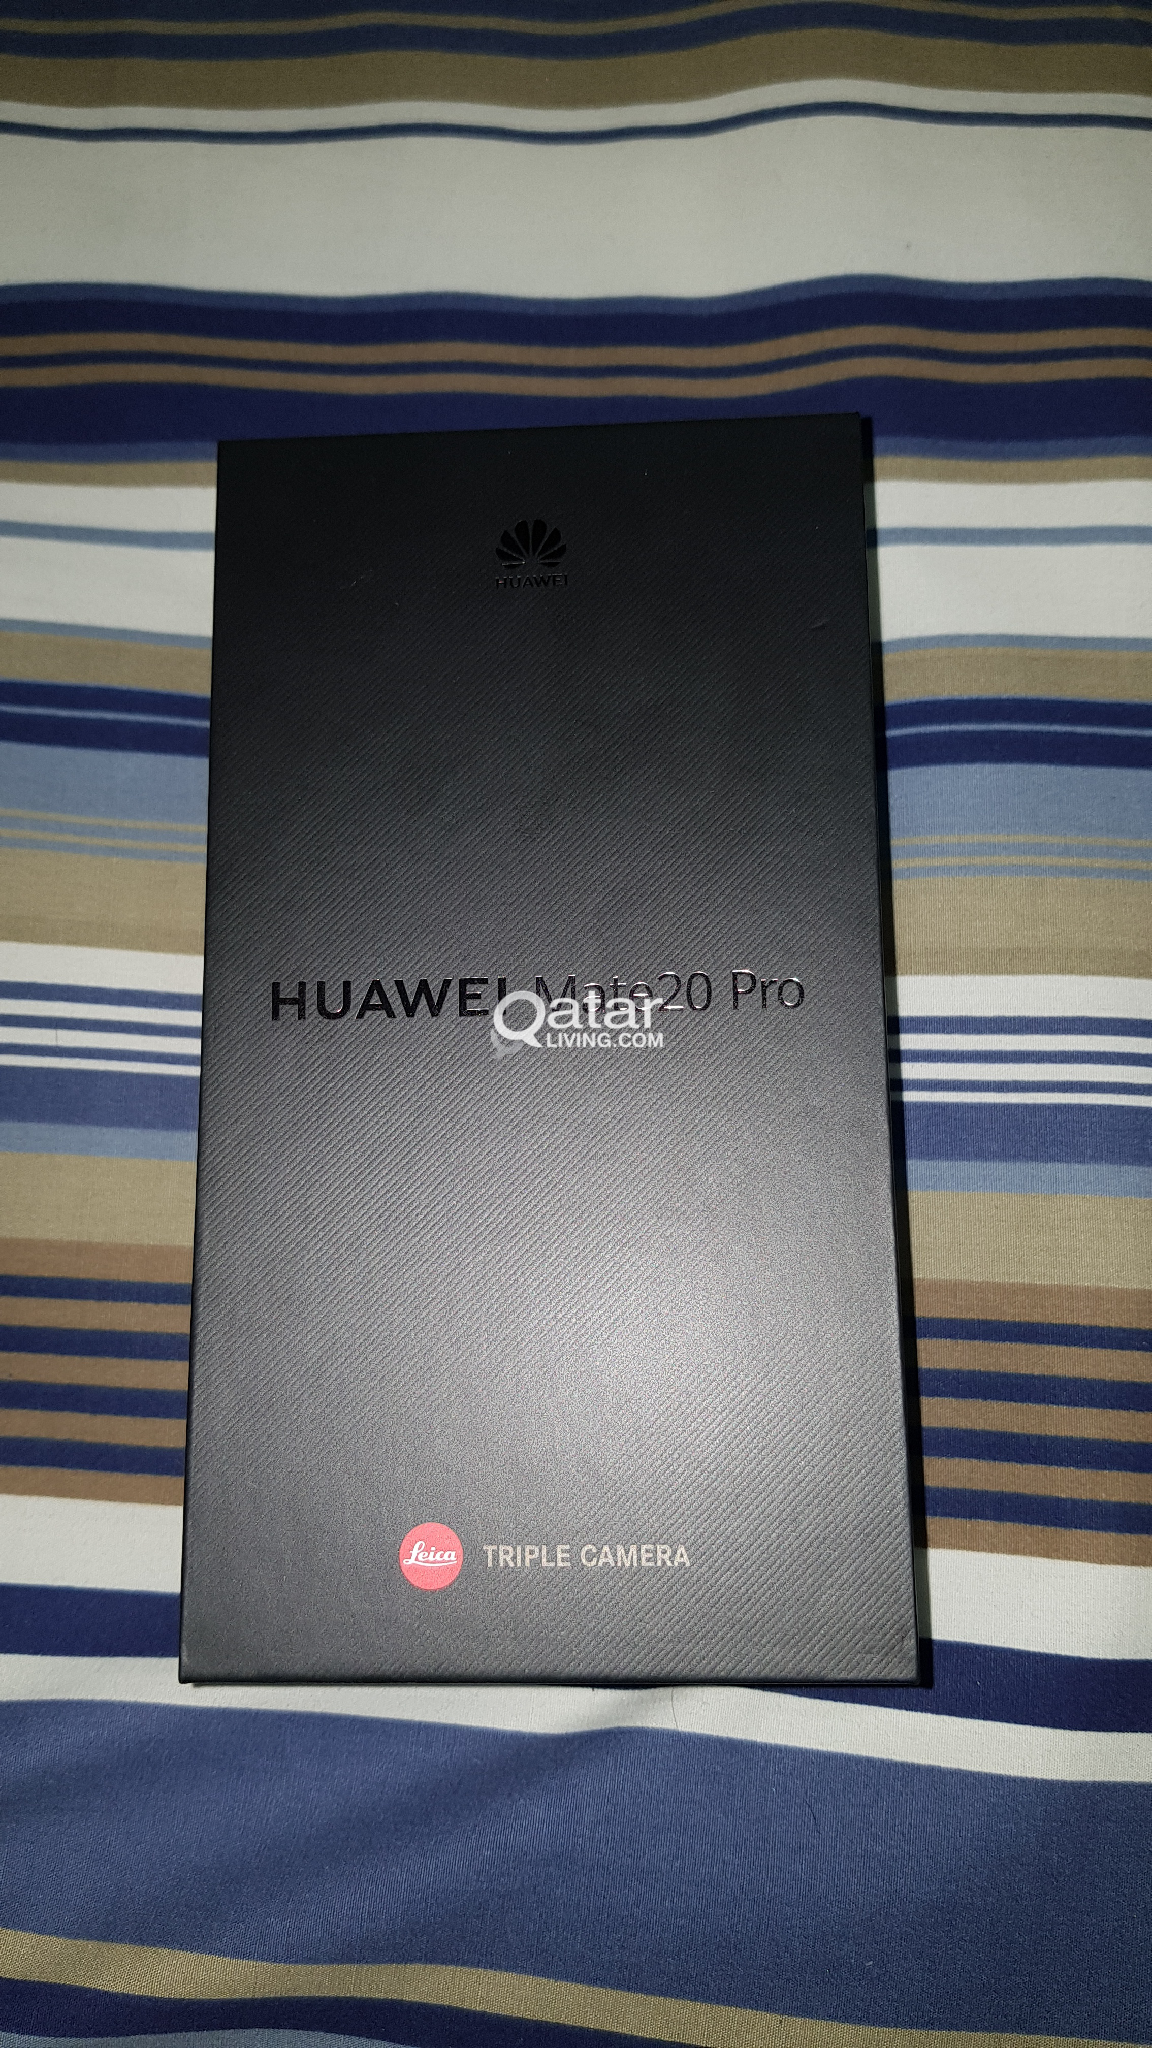 Huawei mate 20 pro new under warranty 12 month